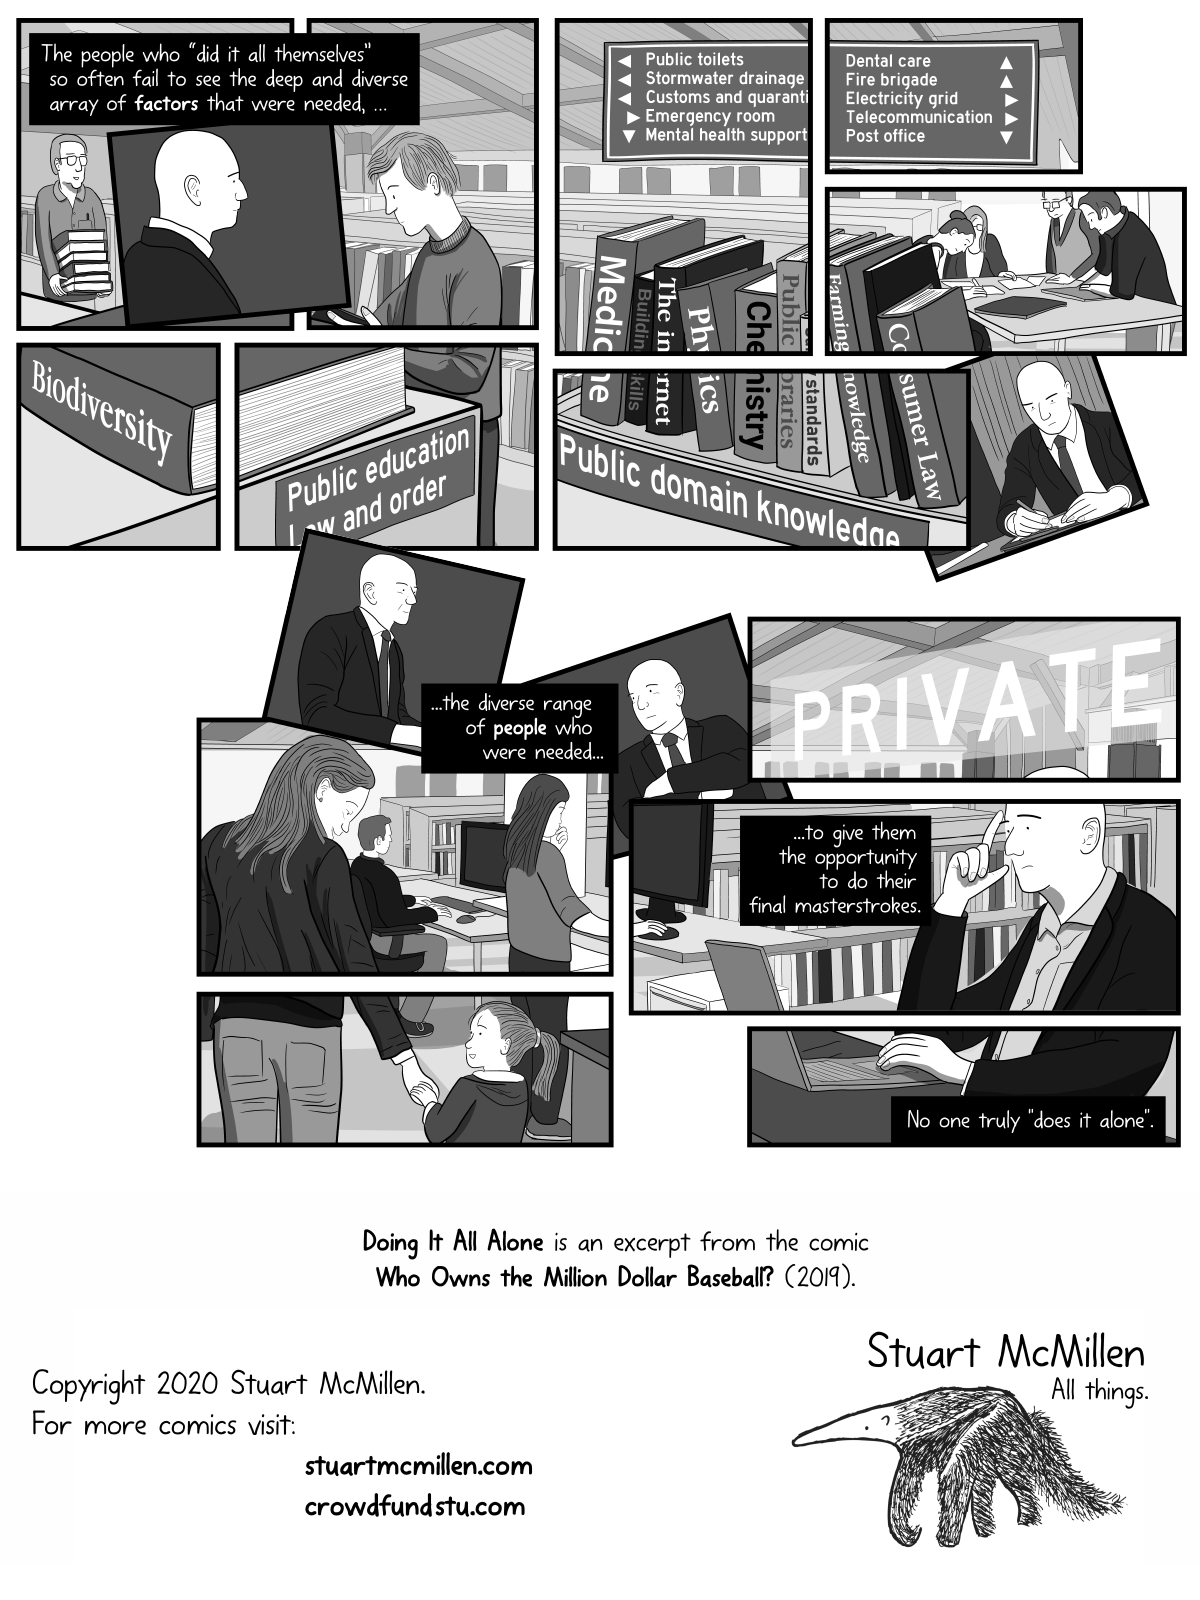 """The people who """"did it all themselves"""" so often fail to see the deep and diverse array of factors that were needed. The diverse range of people who were needed to give them the opportunity to do their final masterstrokes. No one truly """"does it alone"""". """"Doing It All Alone"""" is an excerpt of the comic """"Who Owns the Million Dollar Baseball"""" by Stuart McMillen."""